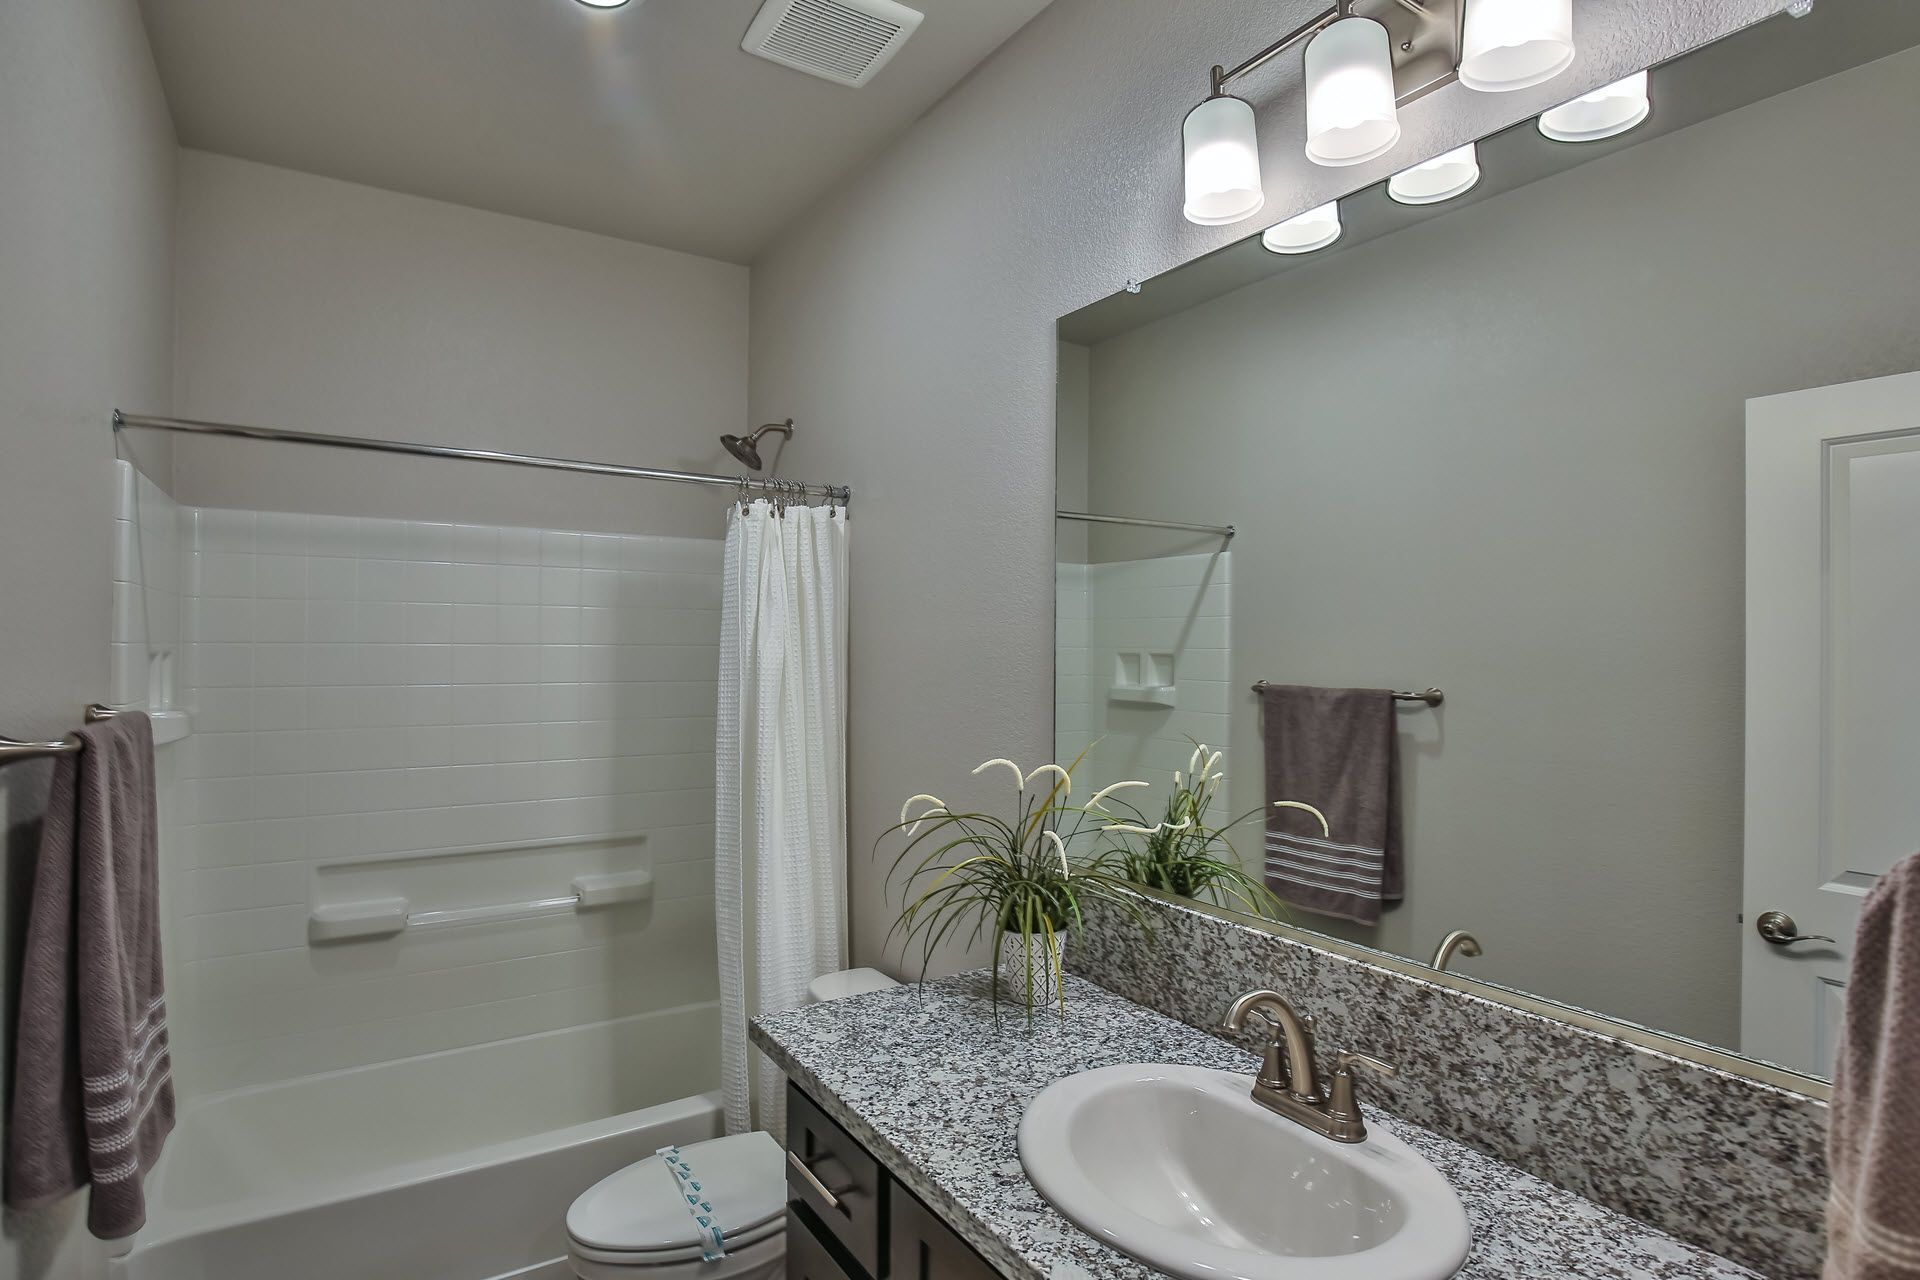 Bathroom featured in the Residence 1669 By Village by the Ponds  in Sacramento, CA